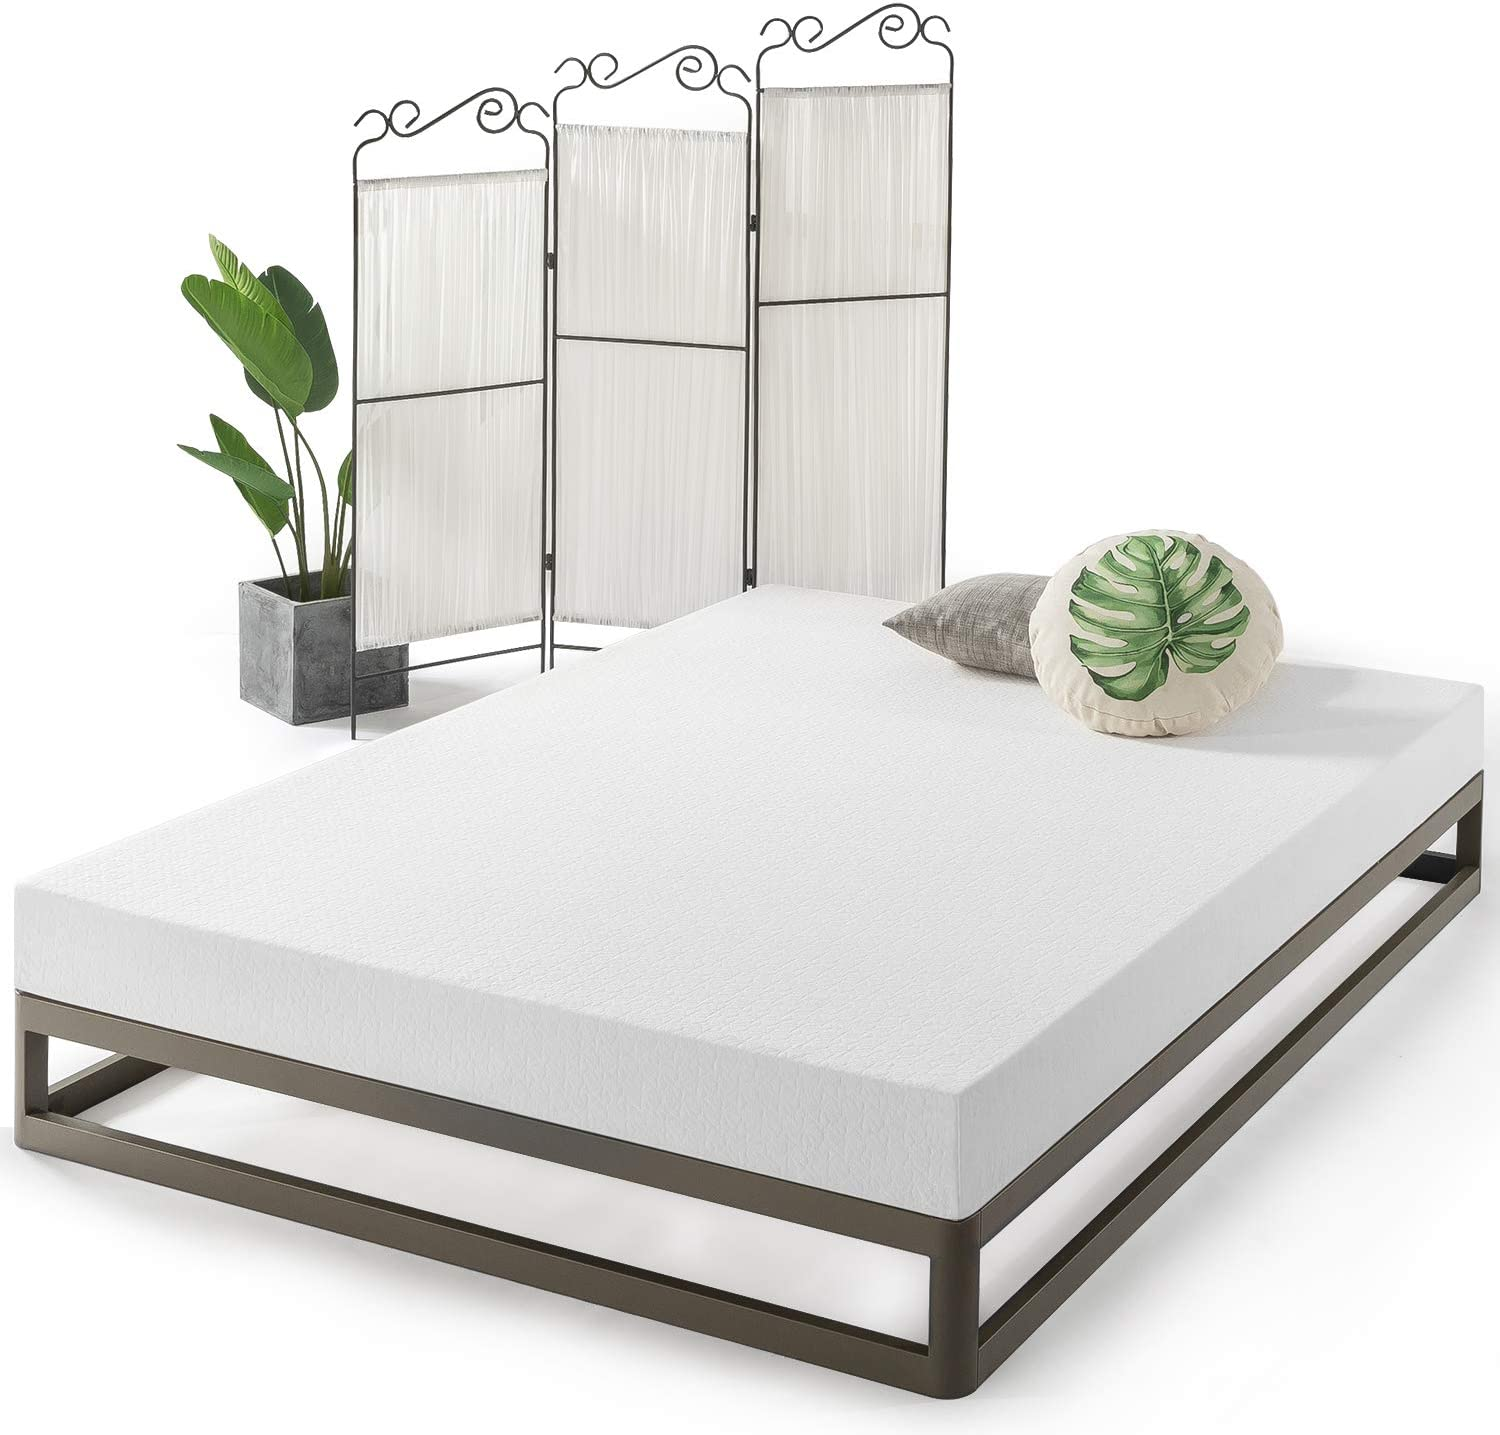 Best Price Mattress Twin Mattress – 6 Inch Air Flow Memory Foam Bed Mattresses Infused with Green Tea, Twin Size